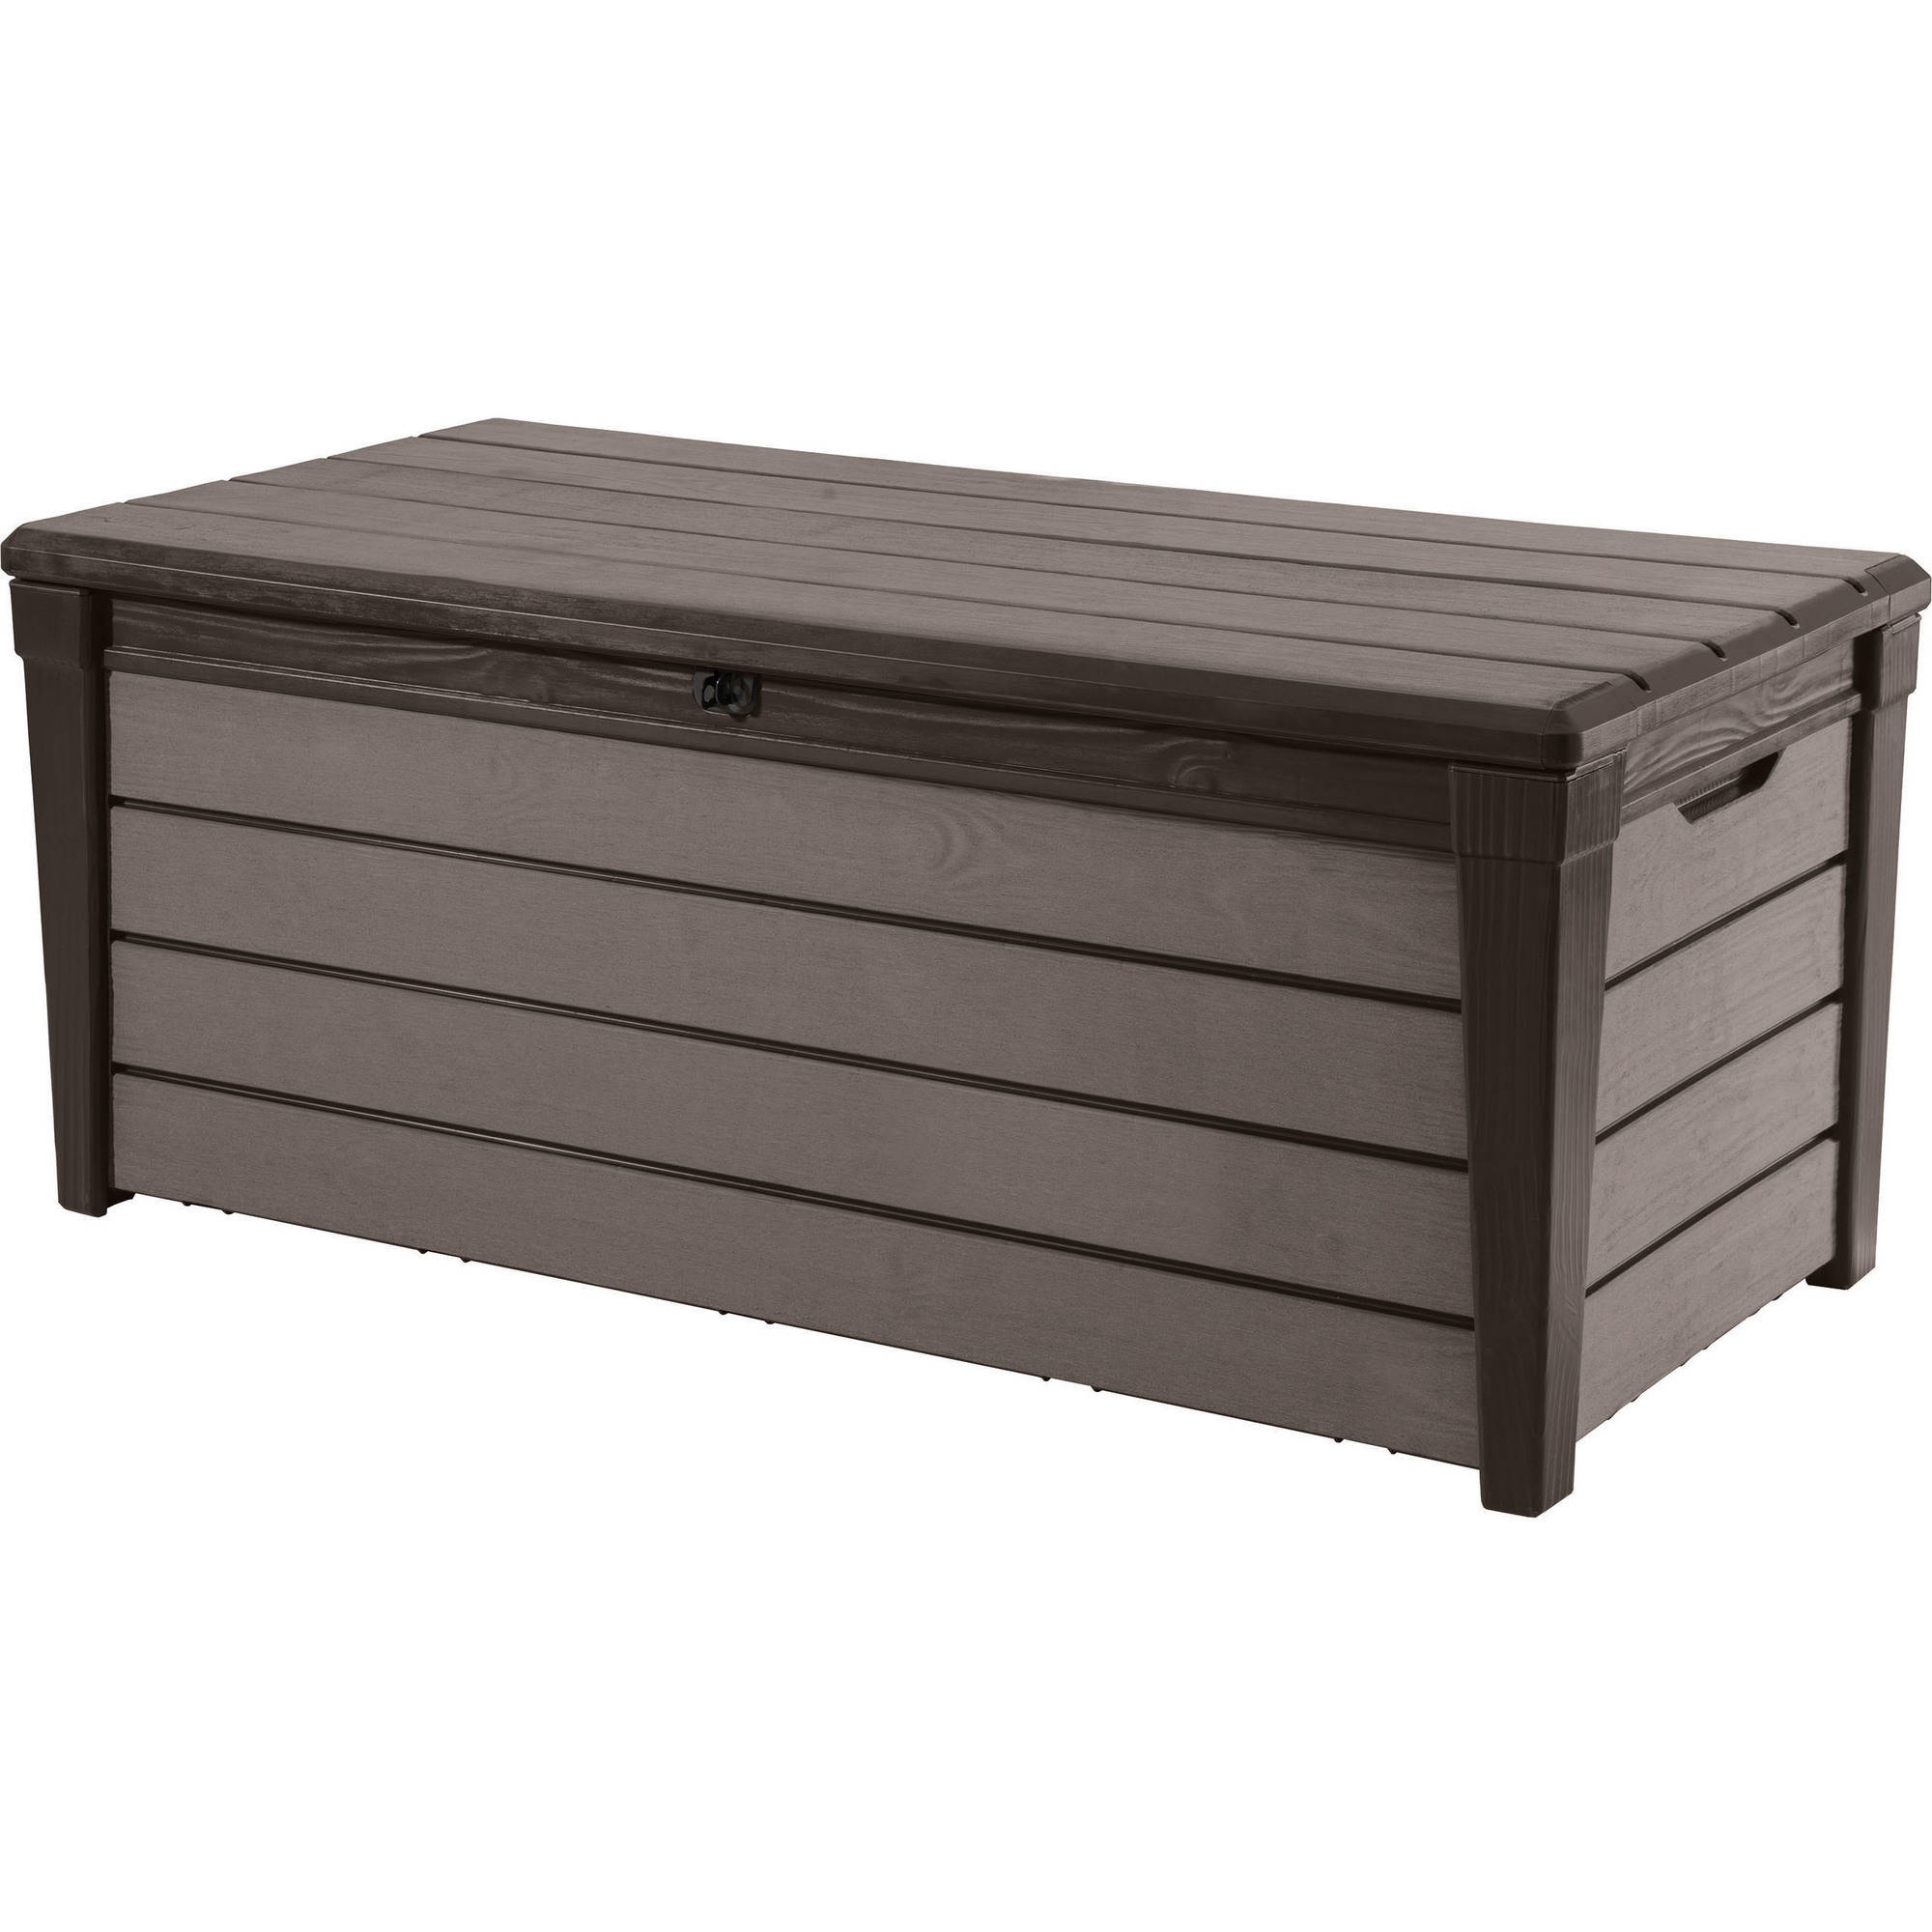 Keter Brushwood 120-Gal Outdoor Storage Deck Box, Espresso Brown by Keter